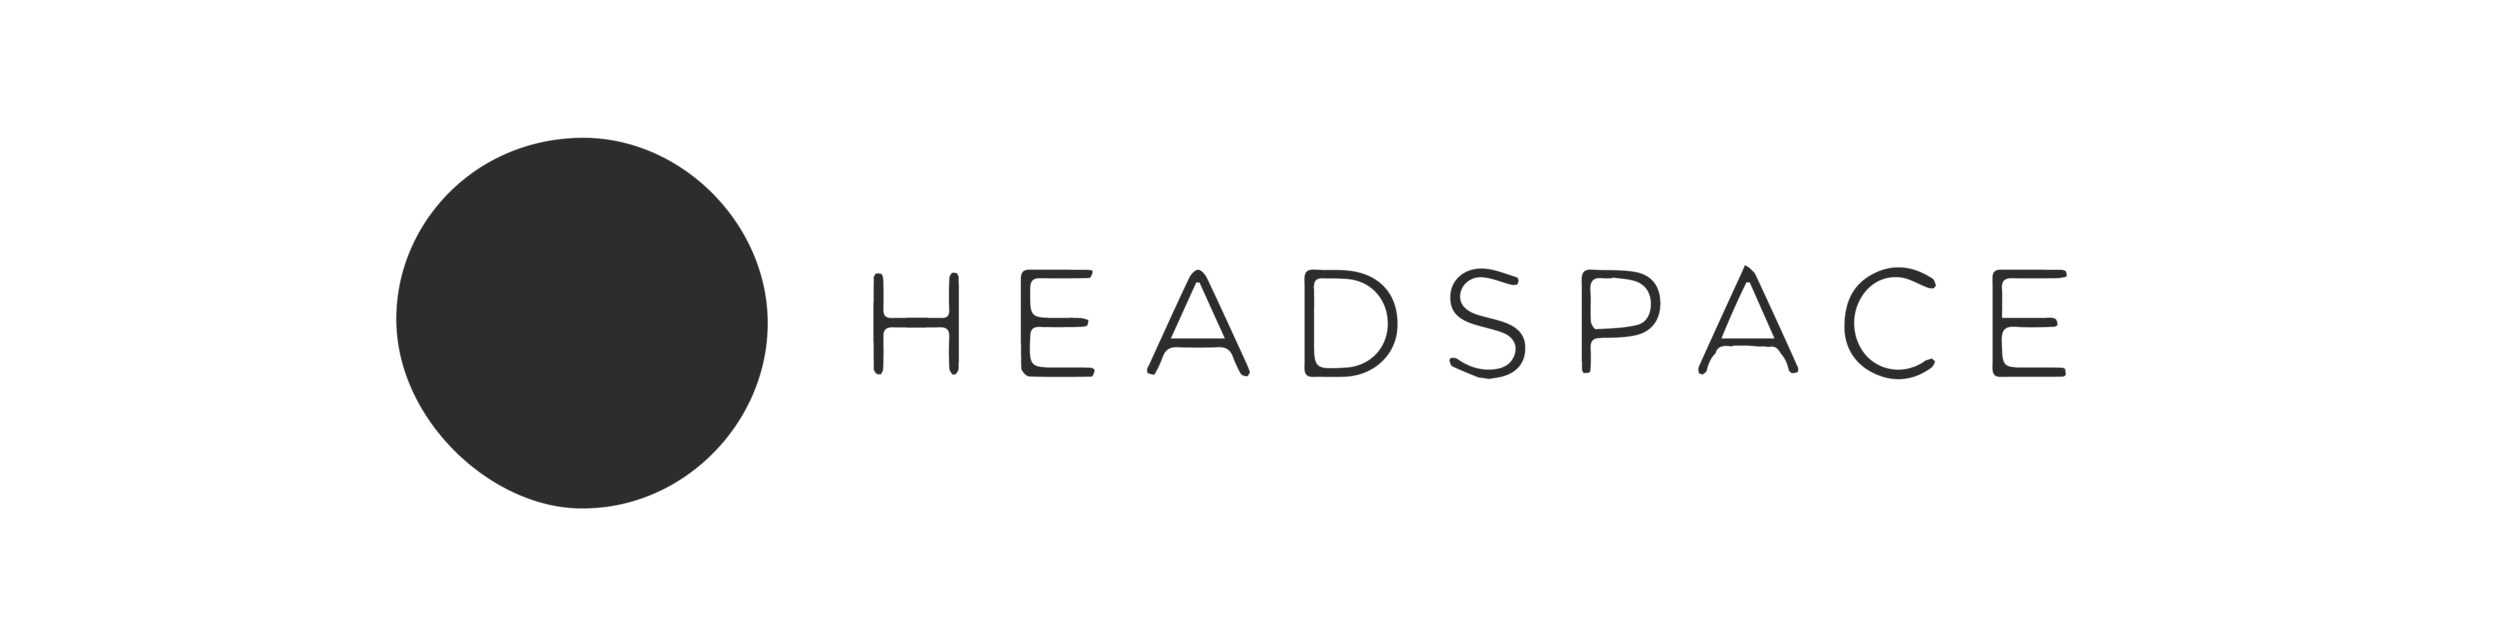 headspace logo for site-01.png